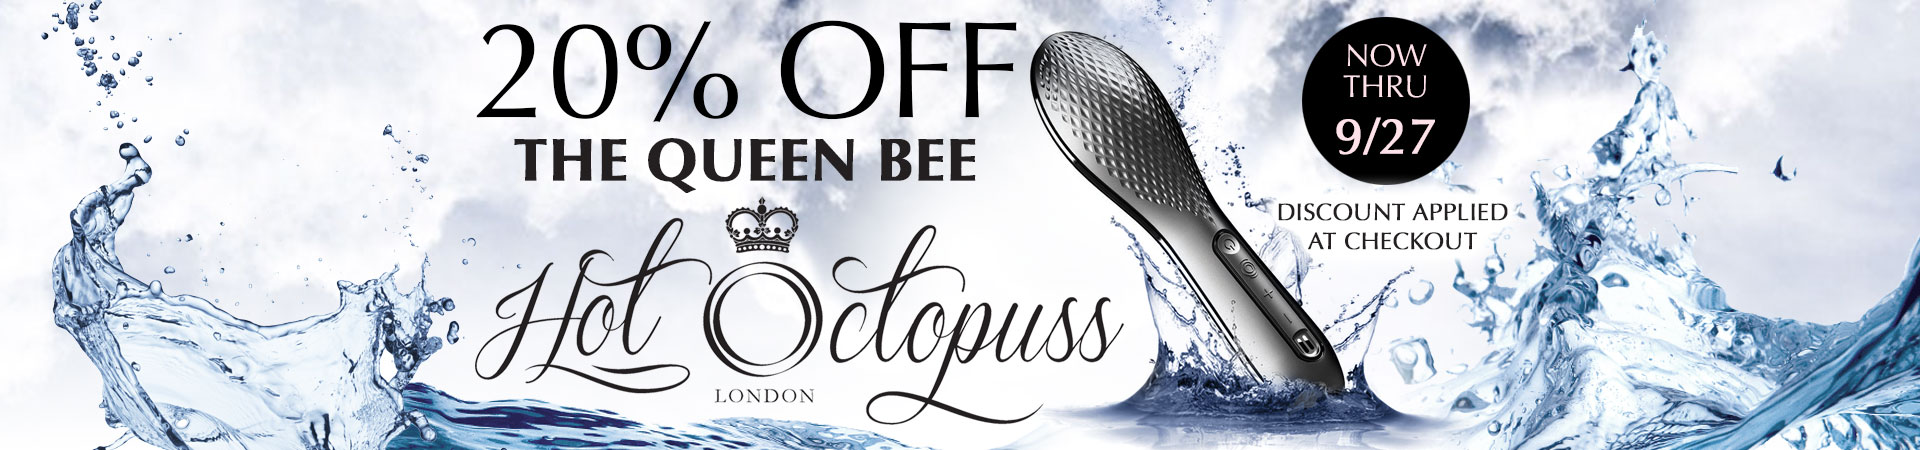 20% Off The Queen Bee By Hot Octopuss - Now Thru 9/27 - Discount Applied At Checkout